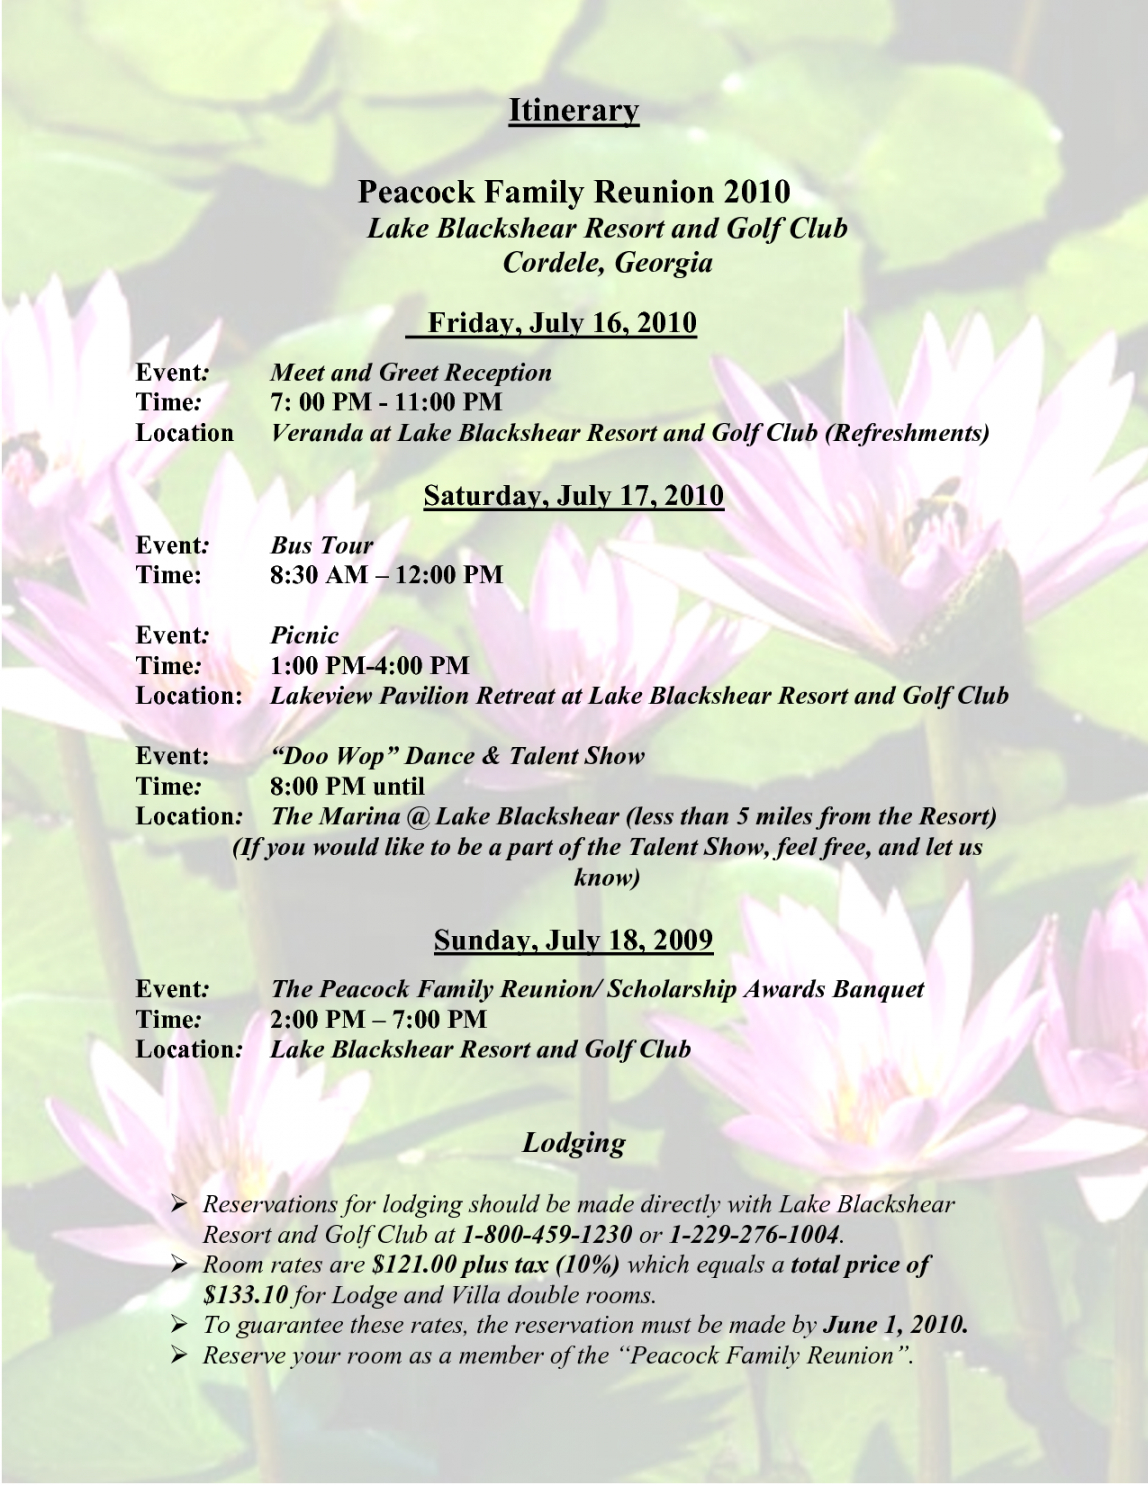 Free Sample Family Reunion Program Templates Itinerary Peacock Family Family Reunion Itinerary Template Sample